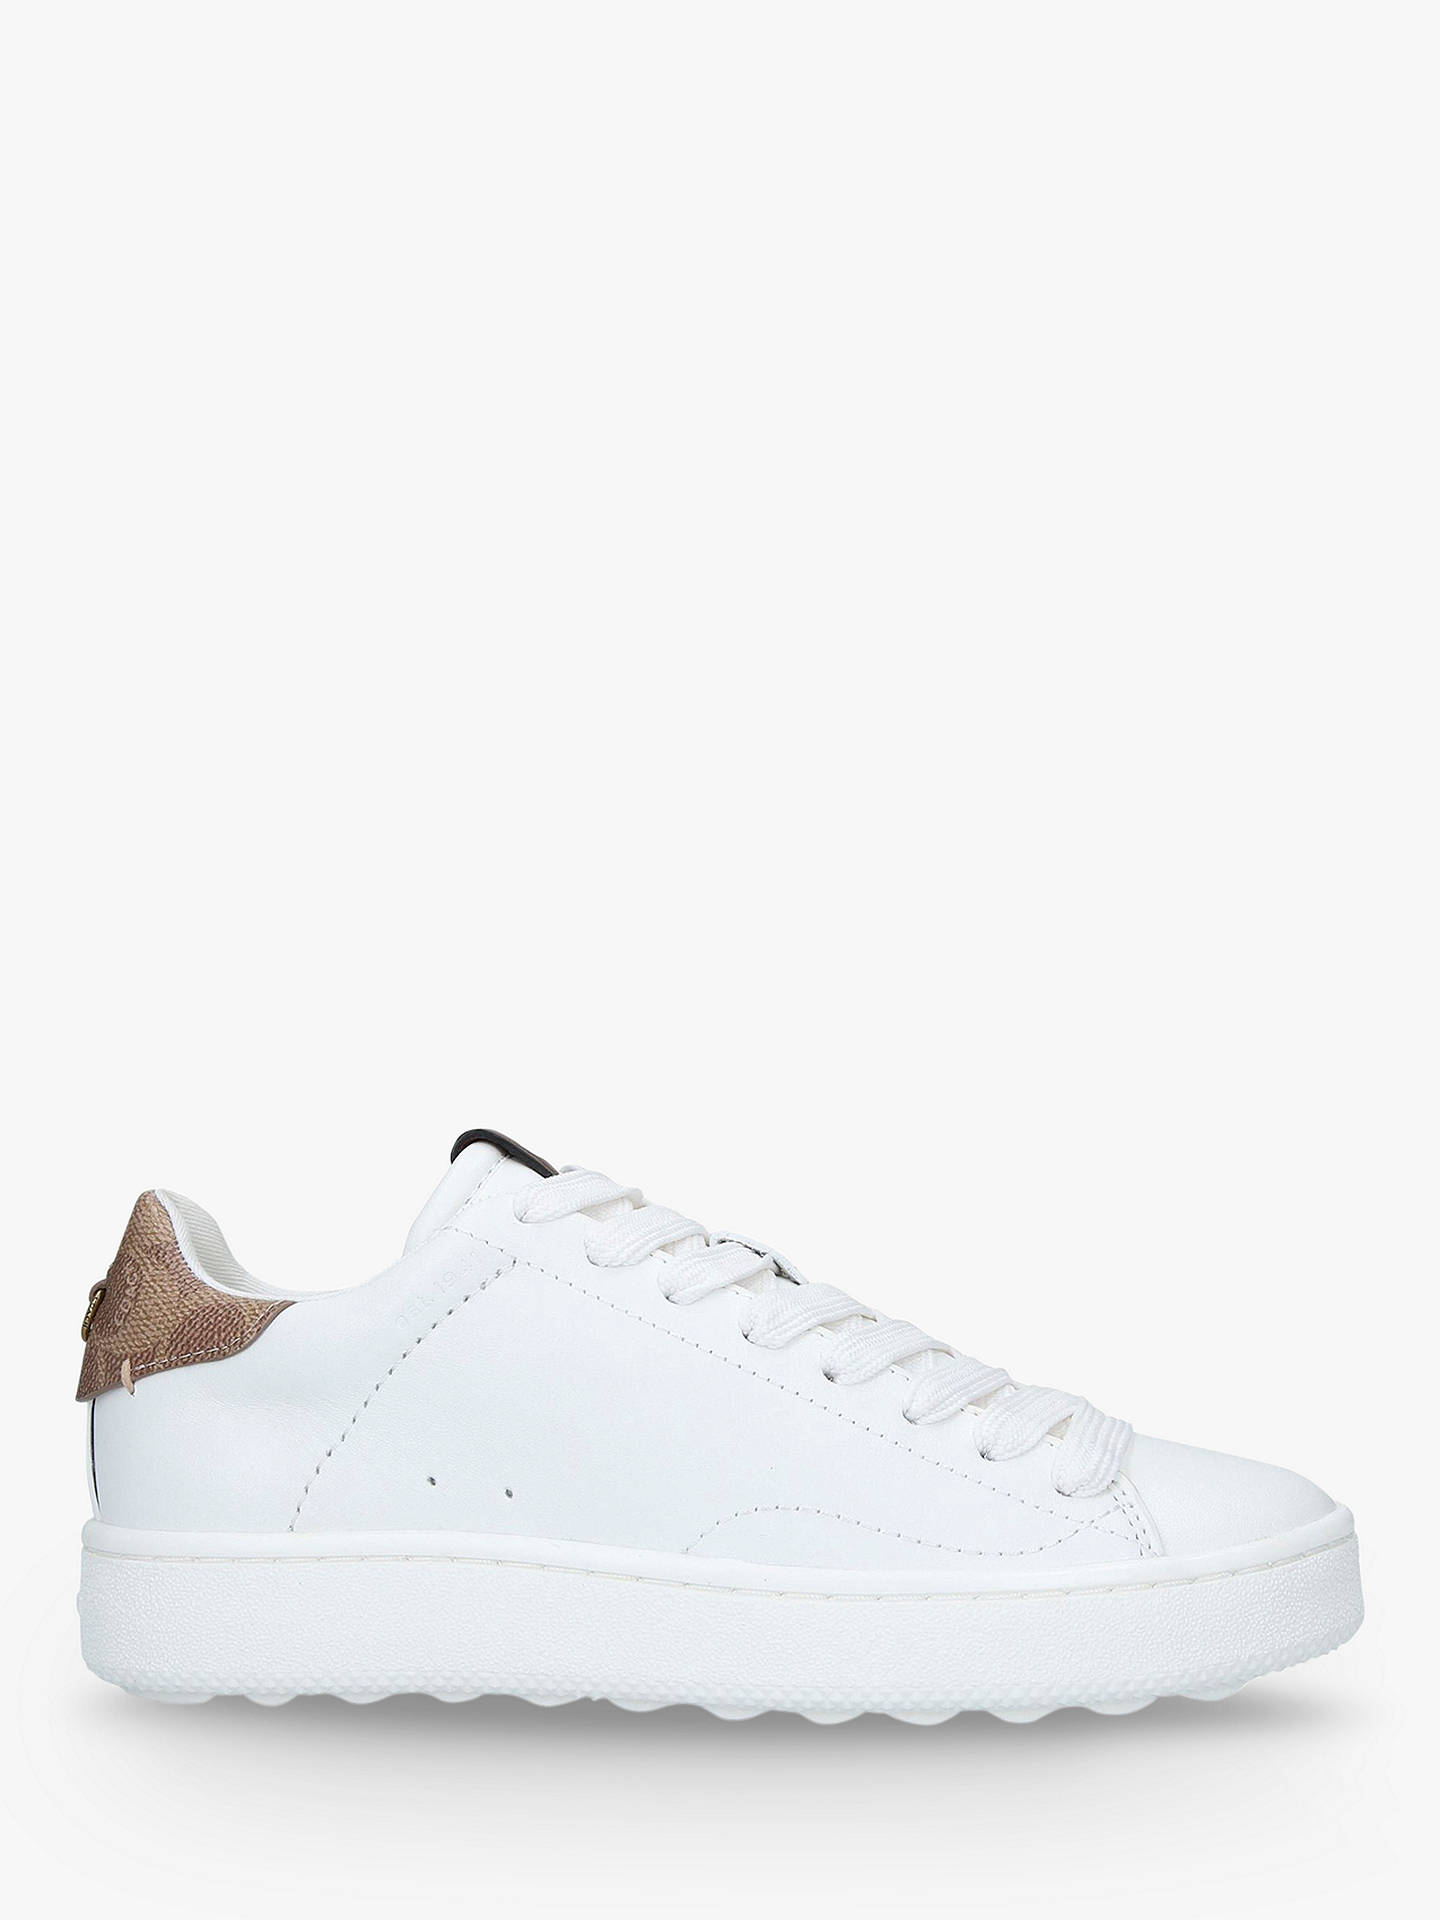 Coach C143 Low Lace Up Trainers, White by Coach